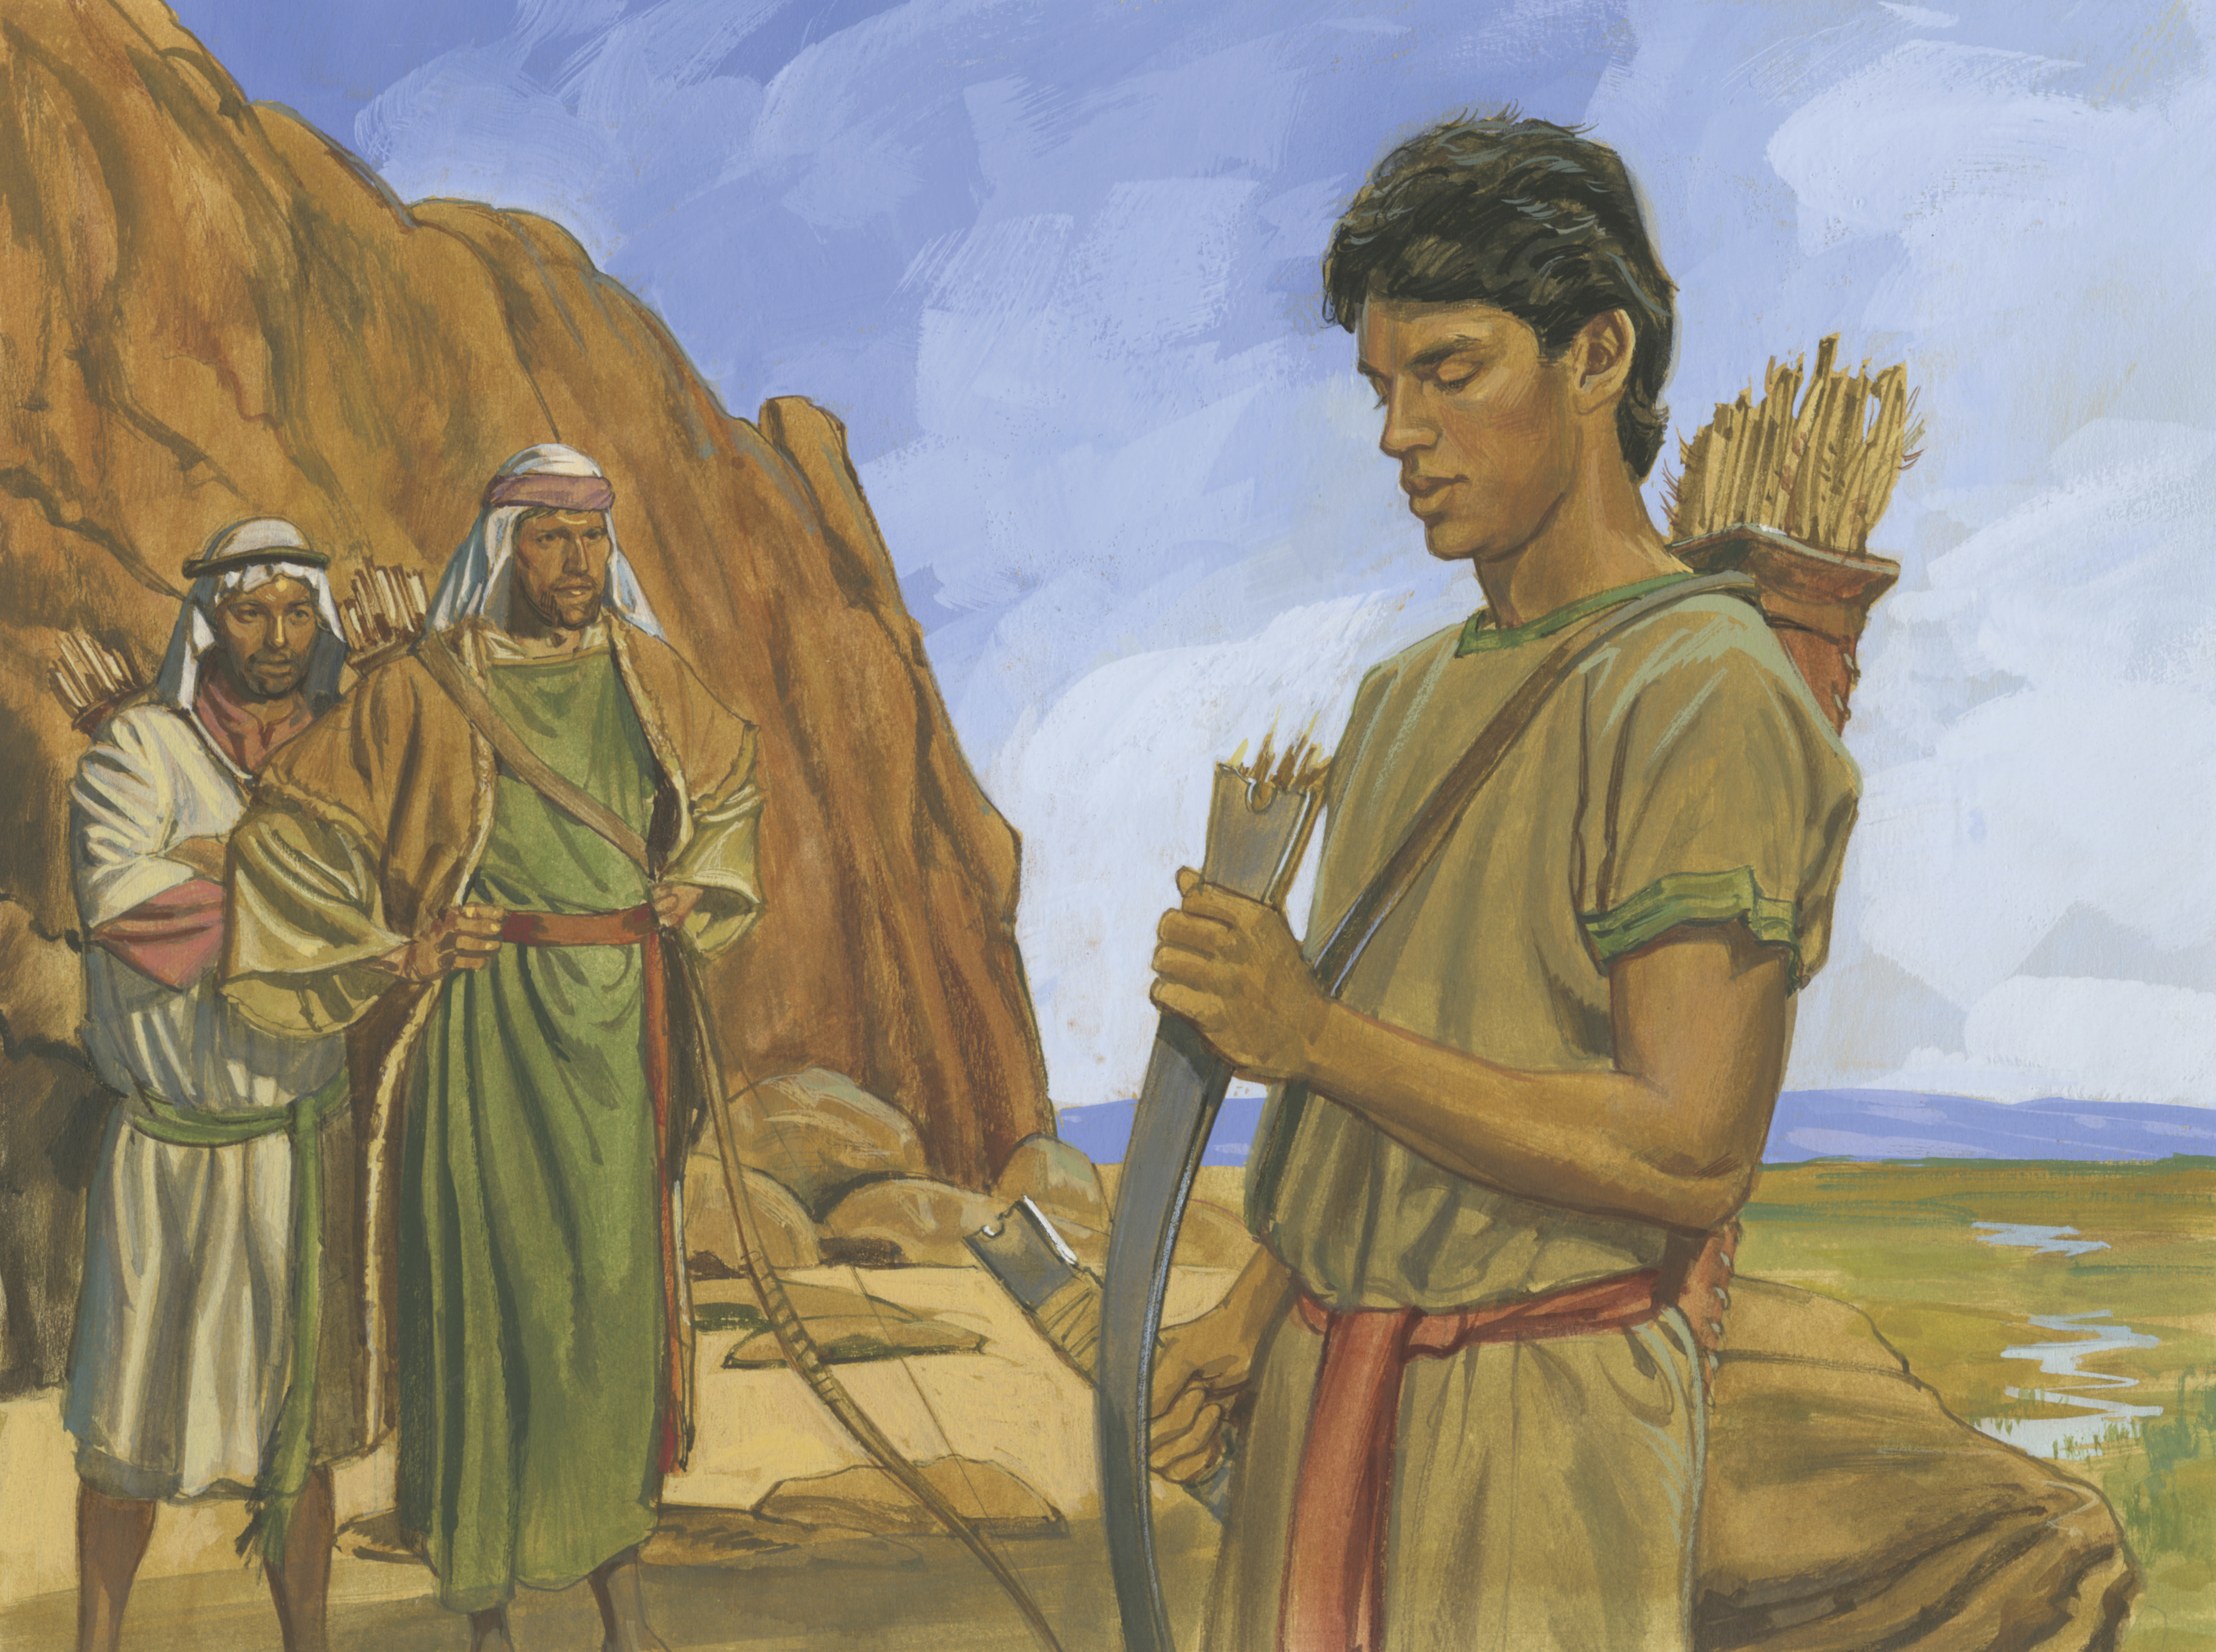 A painting by Jerry Thompson depicting Nephi and his broken bow; Primary manual 4-16